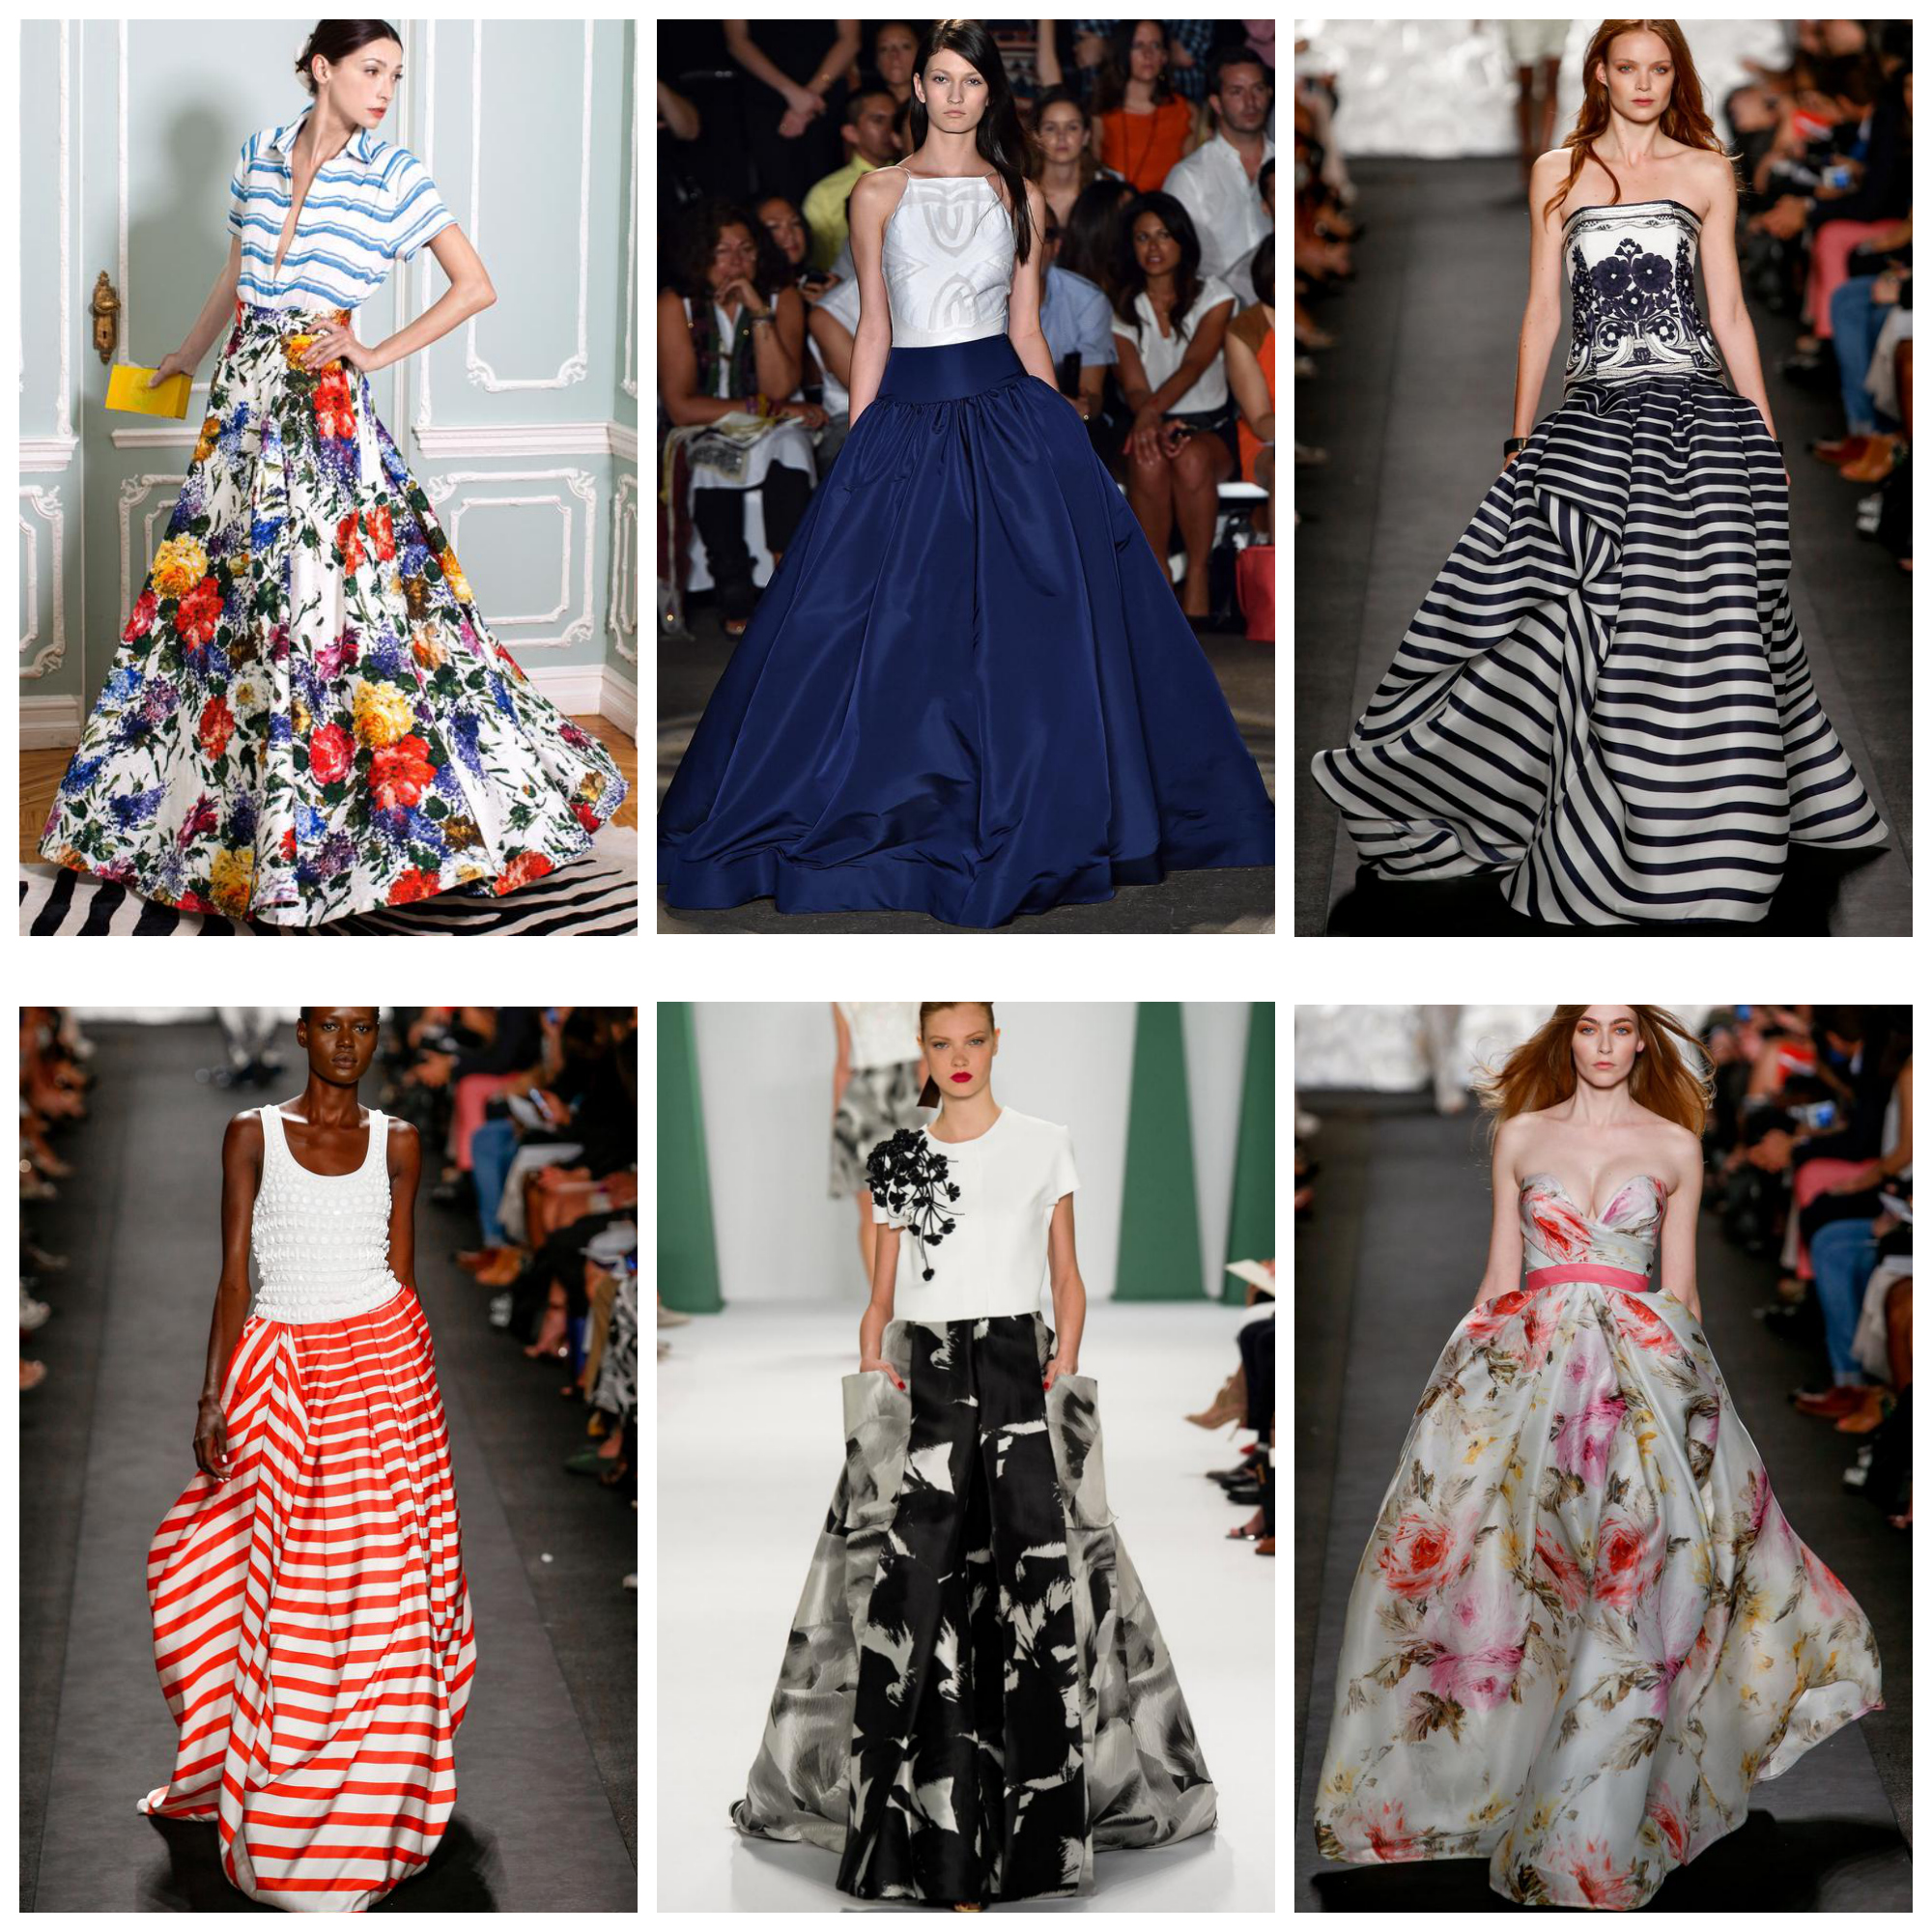 New York Fashion Week Spring/Summer 2015 Style Guide